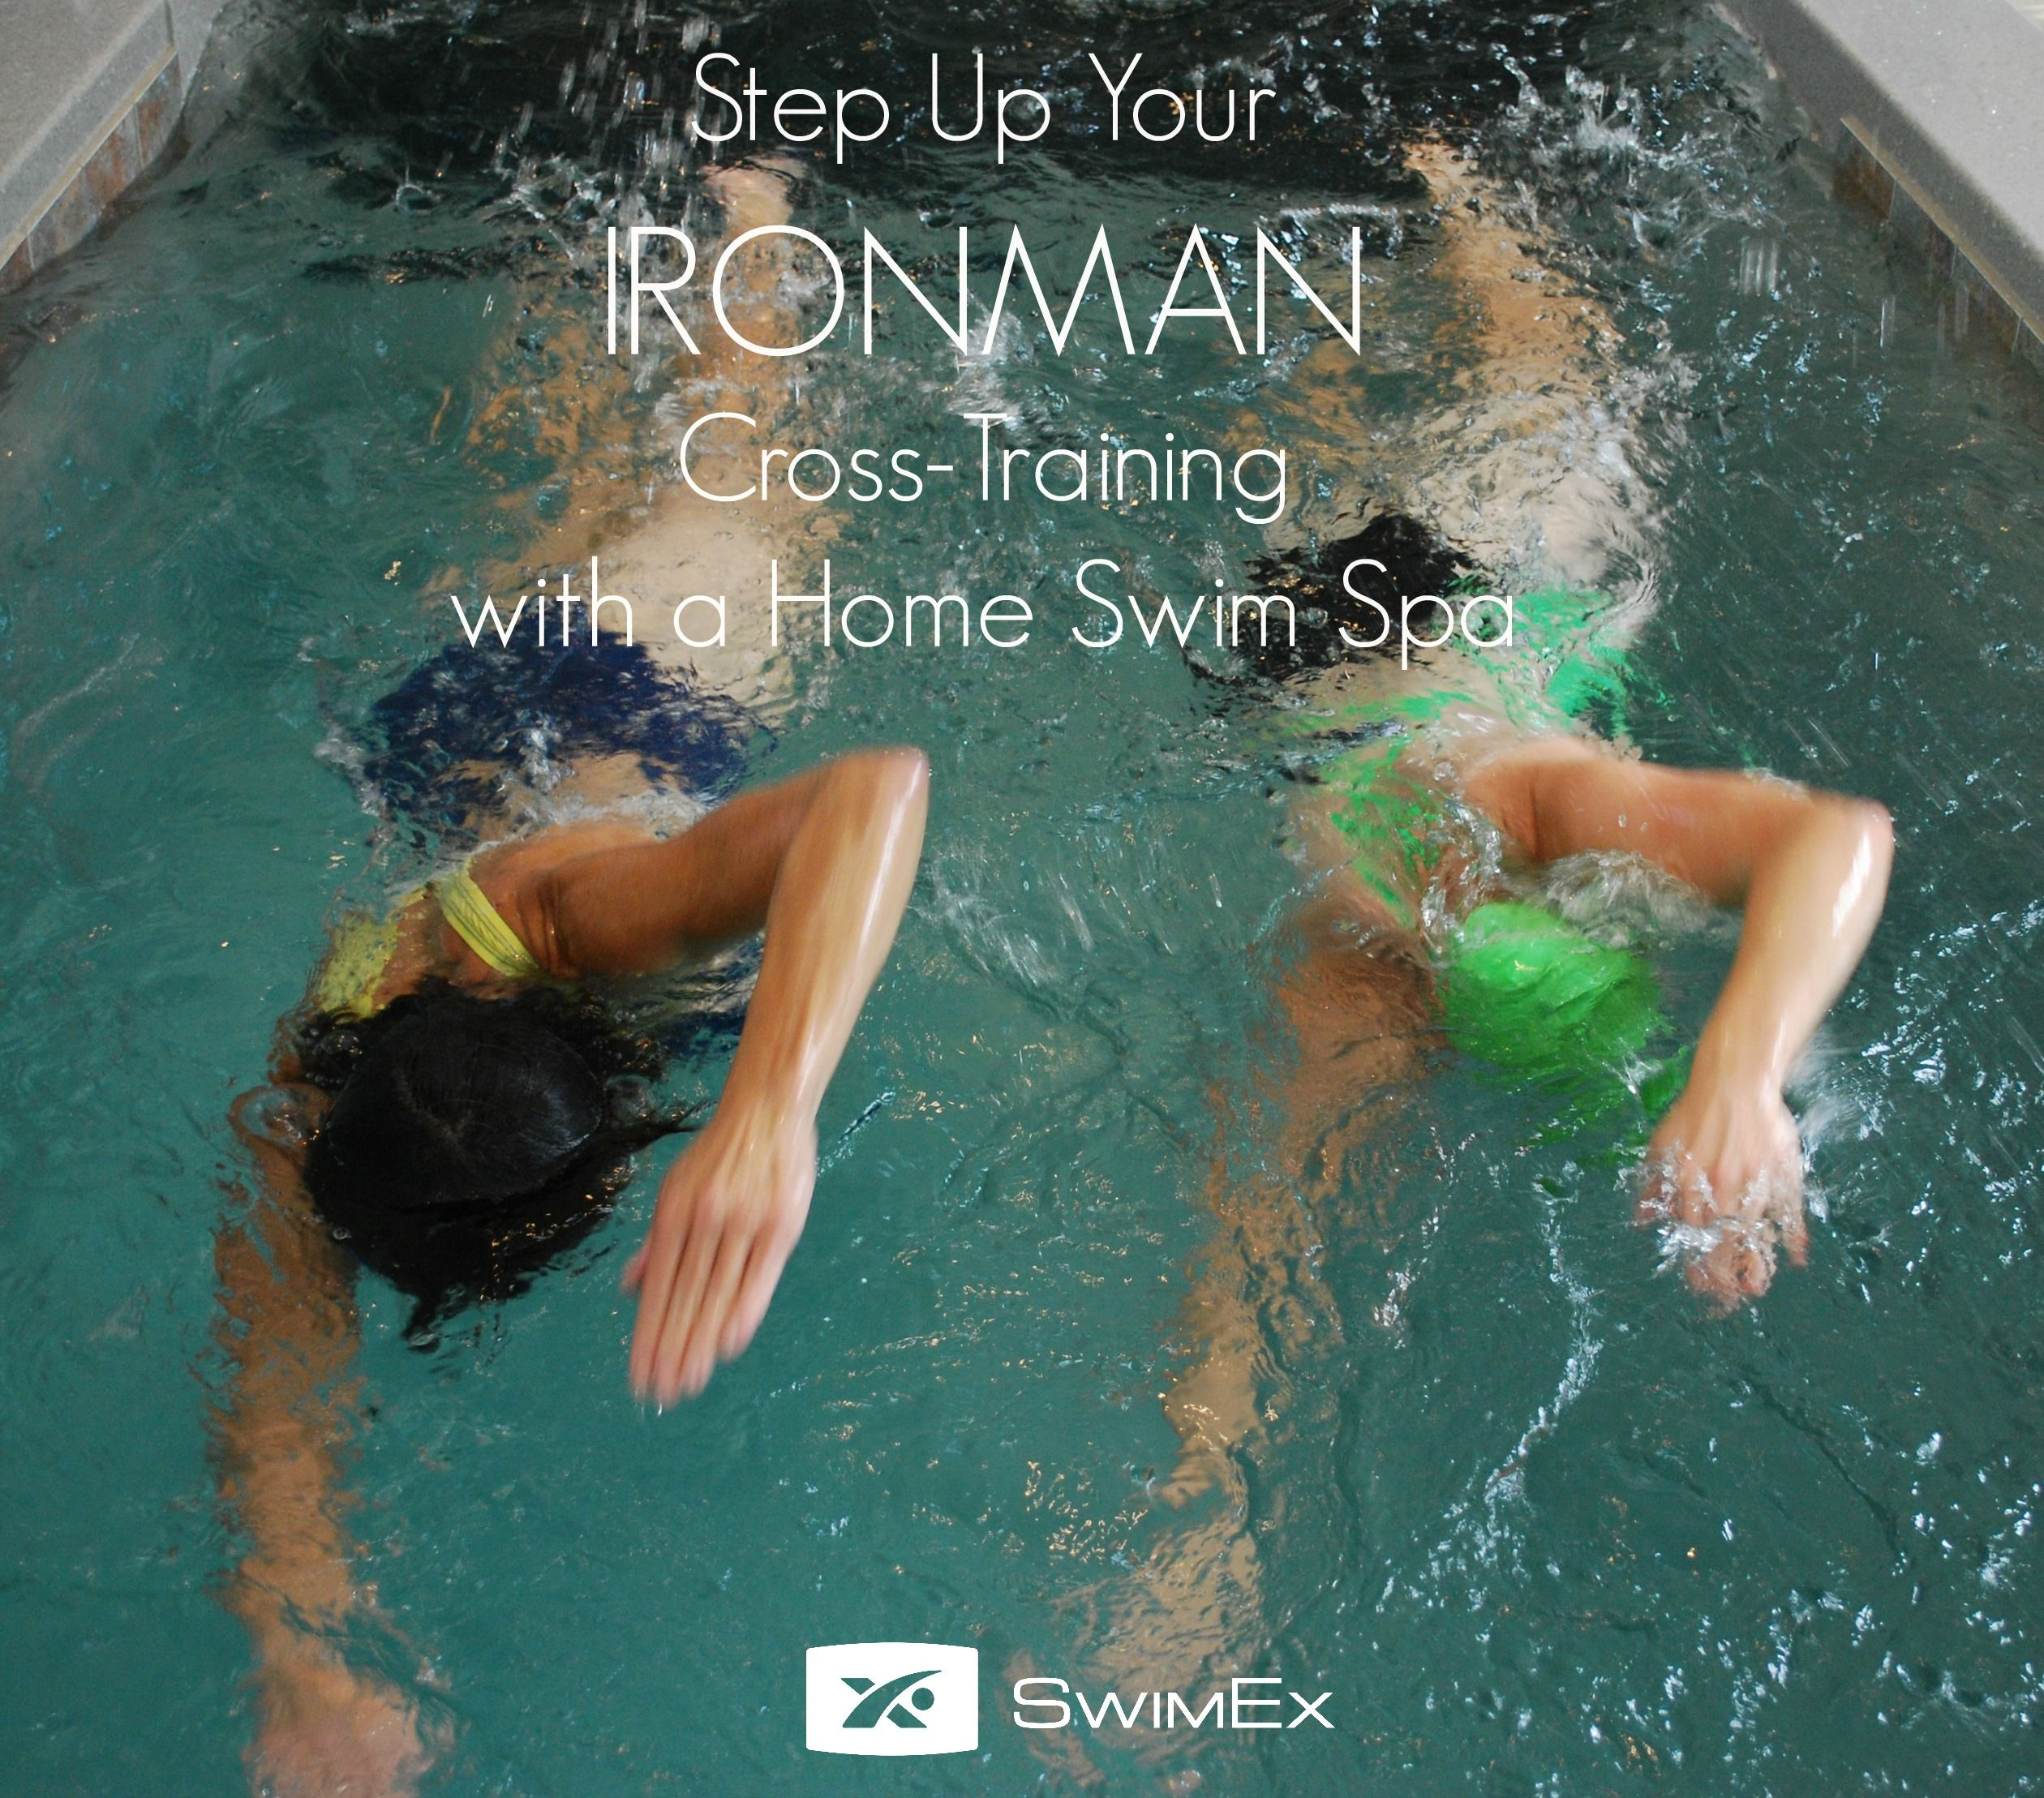 Read how to step up your Ironman cross-training with a home swim spa in the latest SwimEx blog.